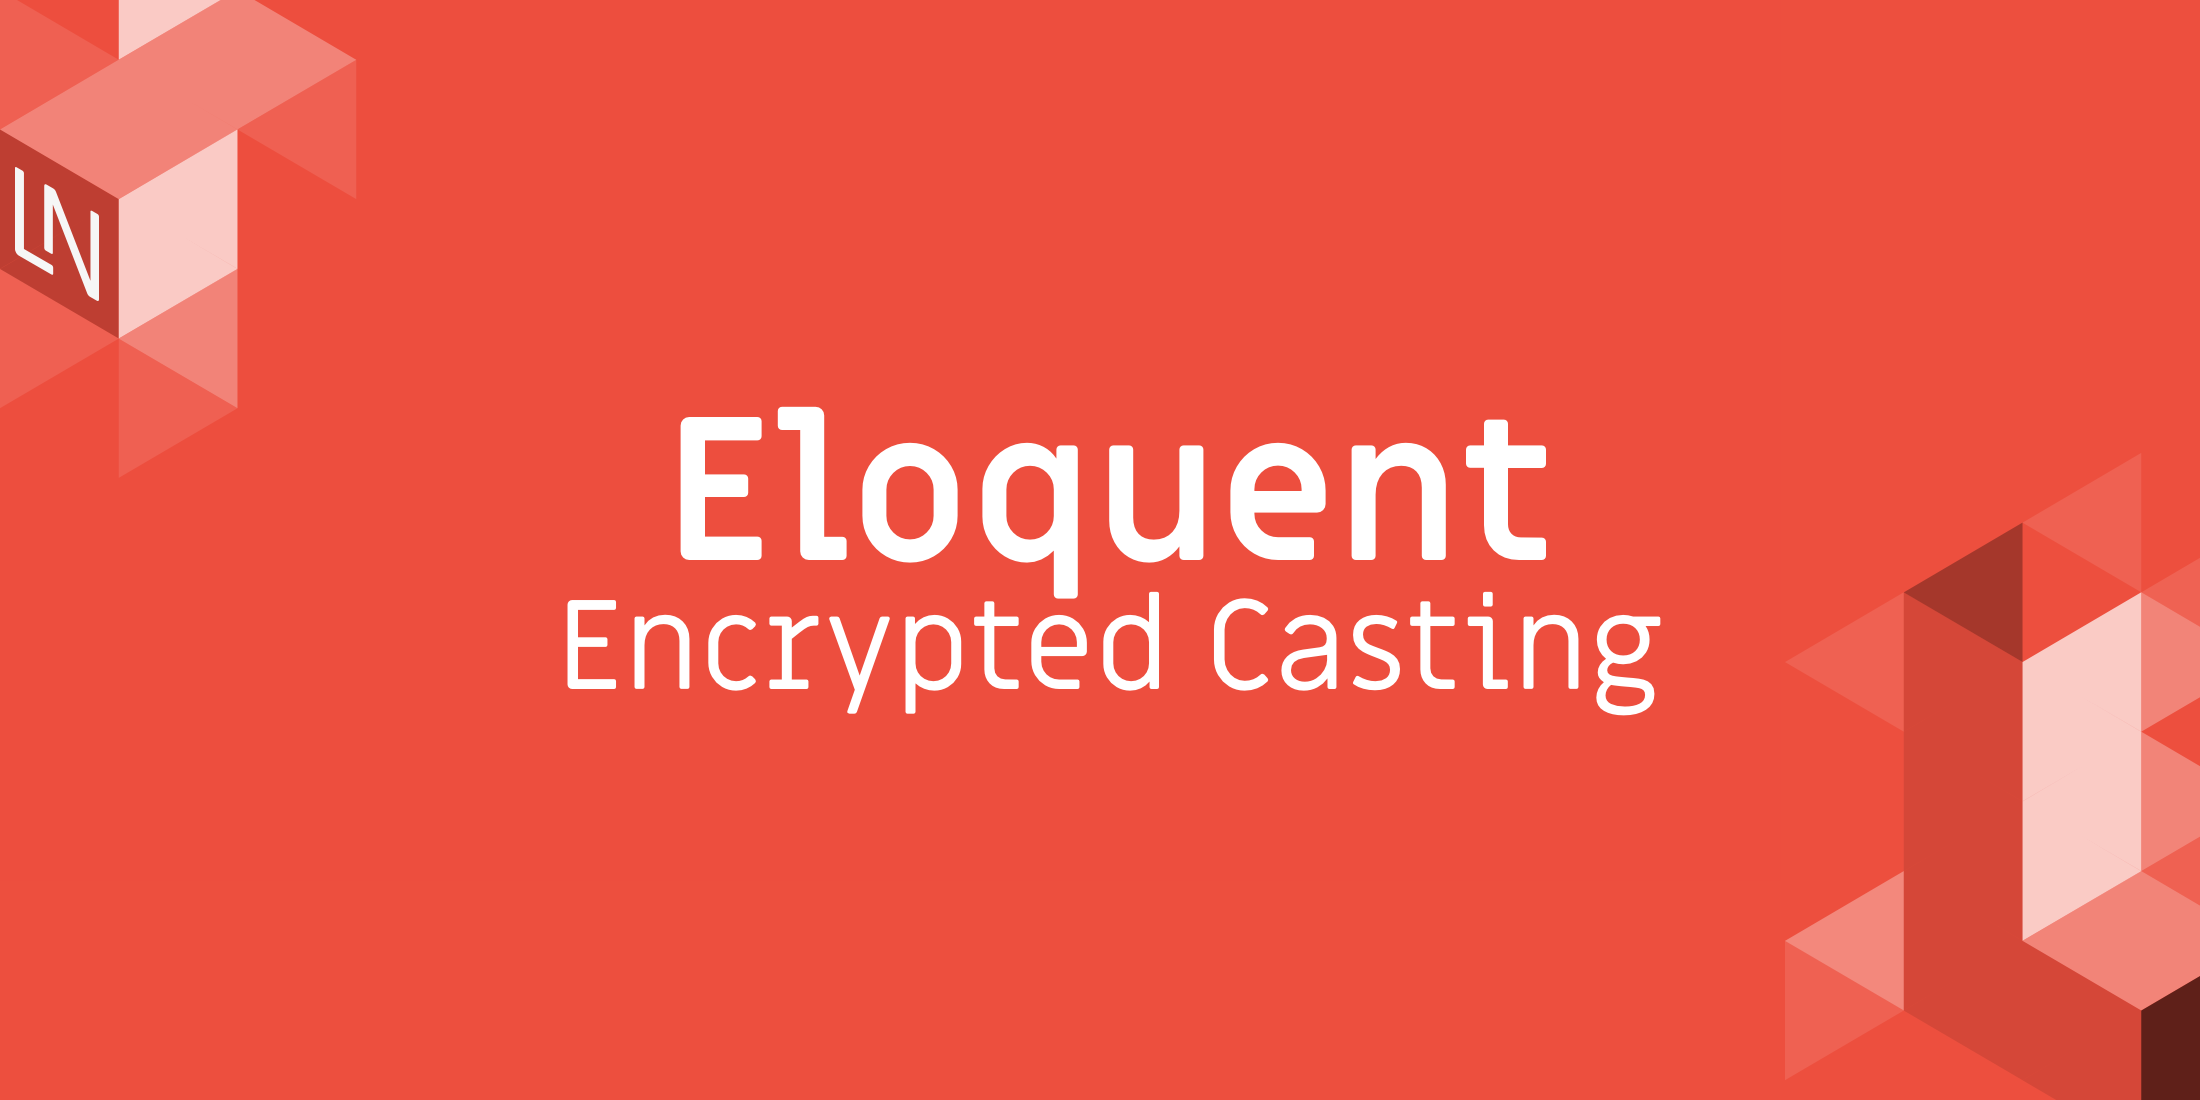 eloquent-encrypted-casting.png